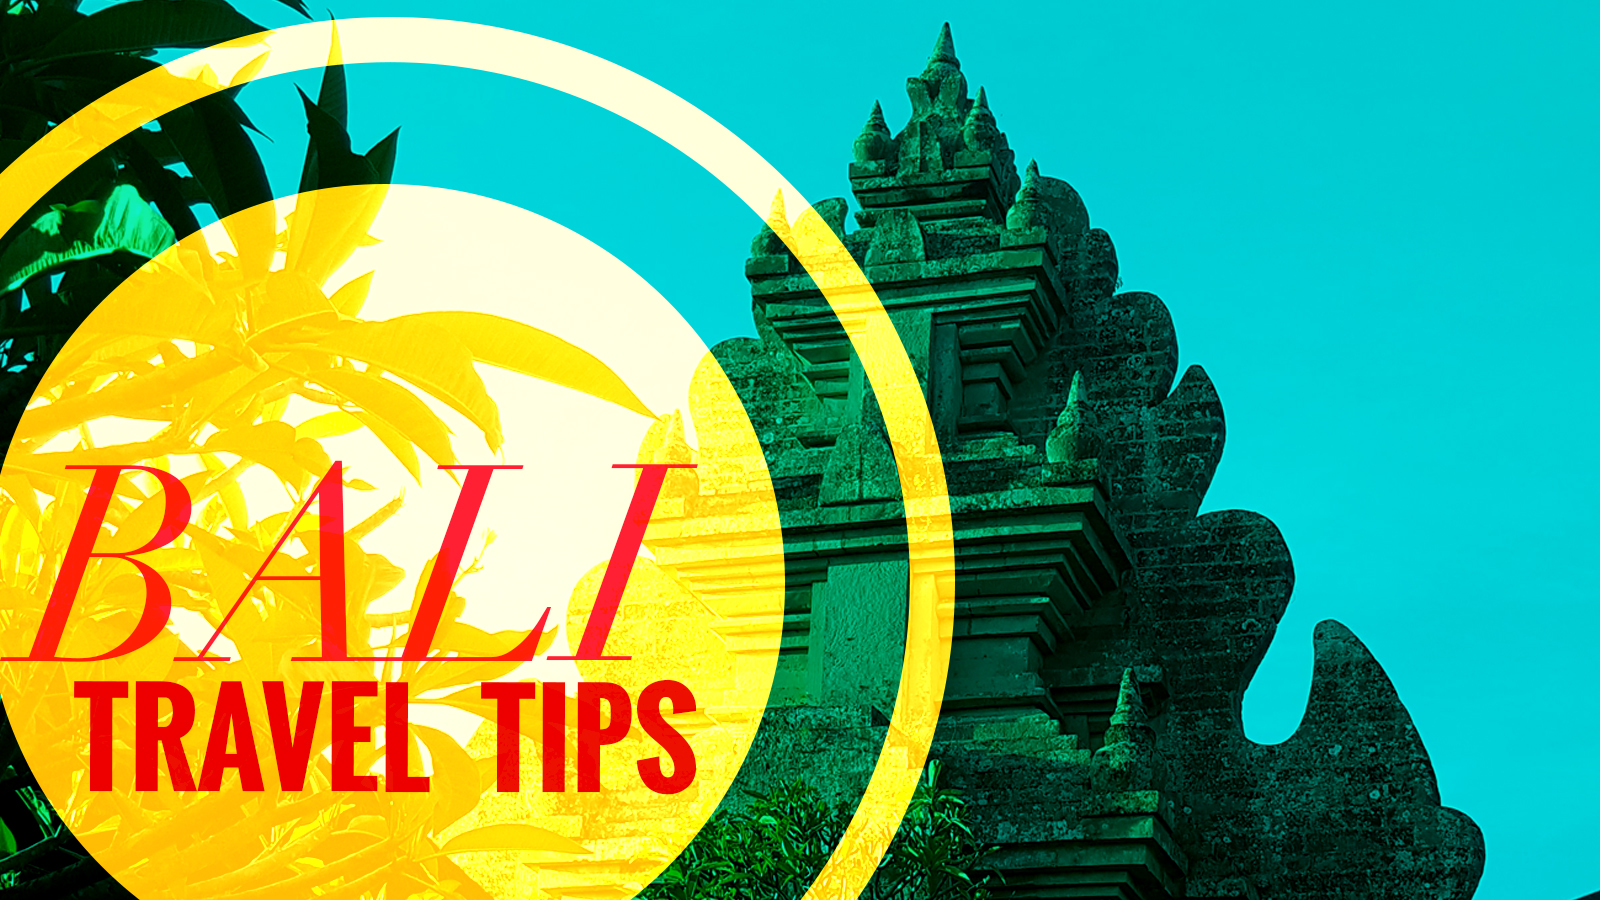 Top Bali Travel Tips for your Holiday